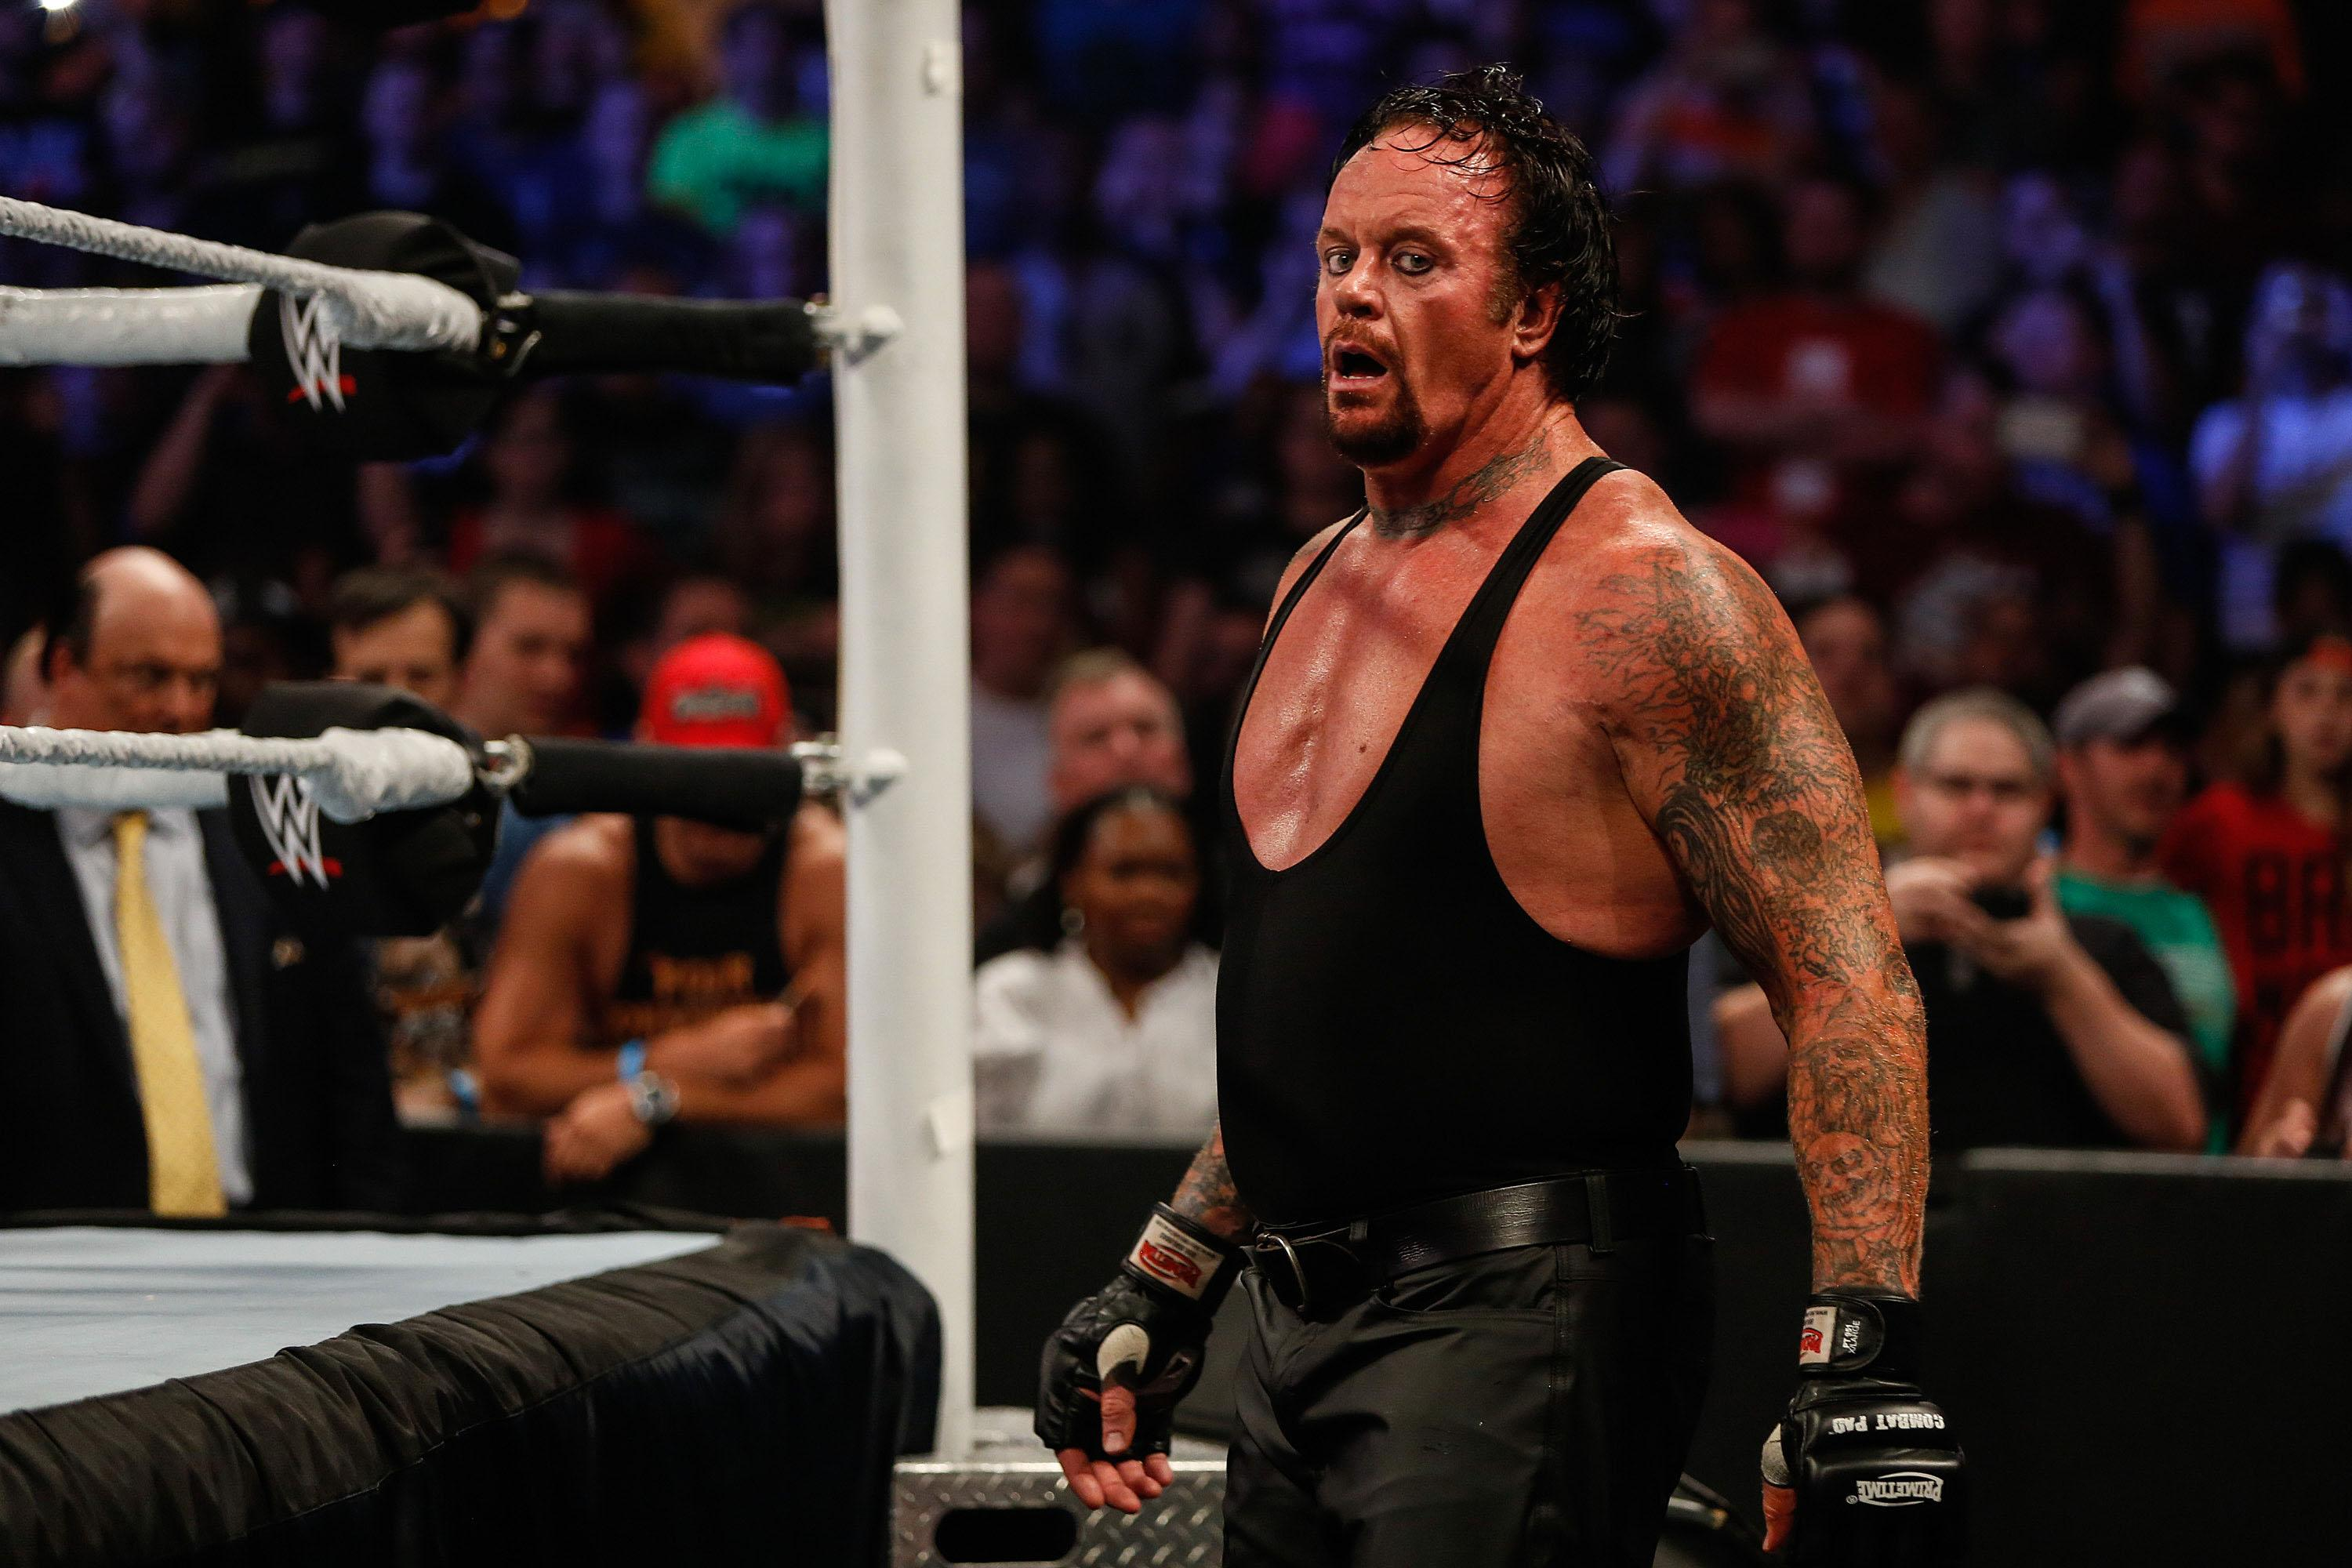 Watch The Undertaker's breathtaking return to WrestleMania